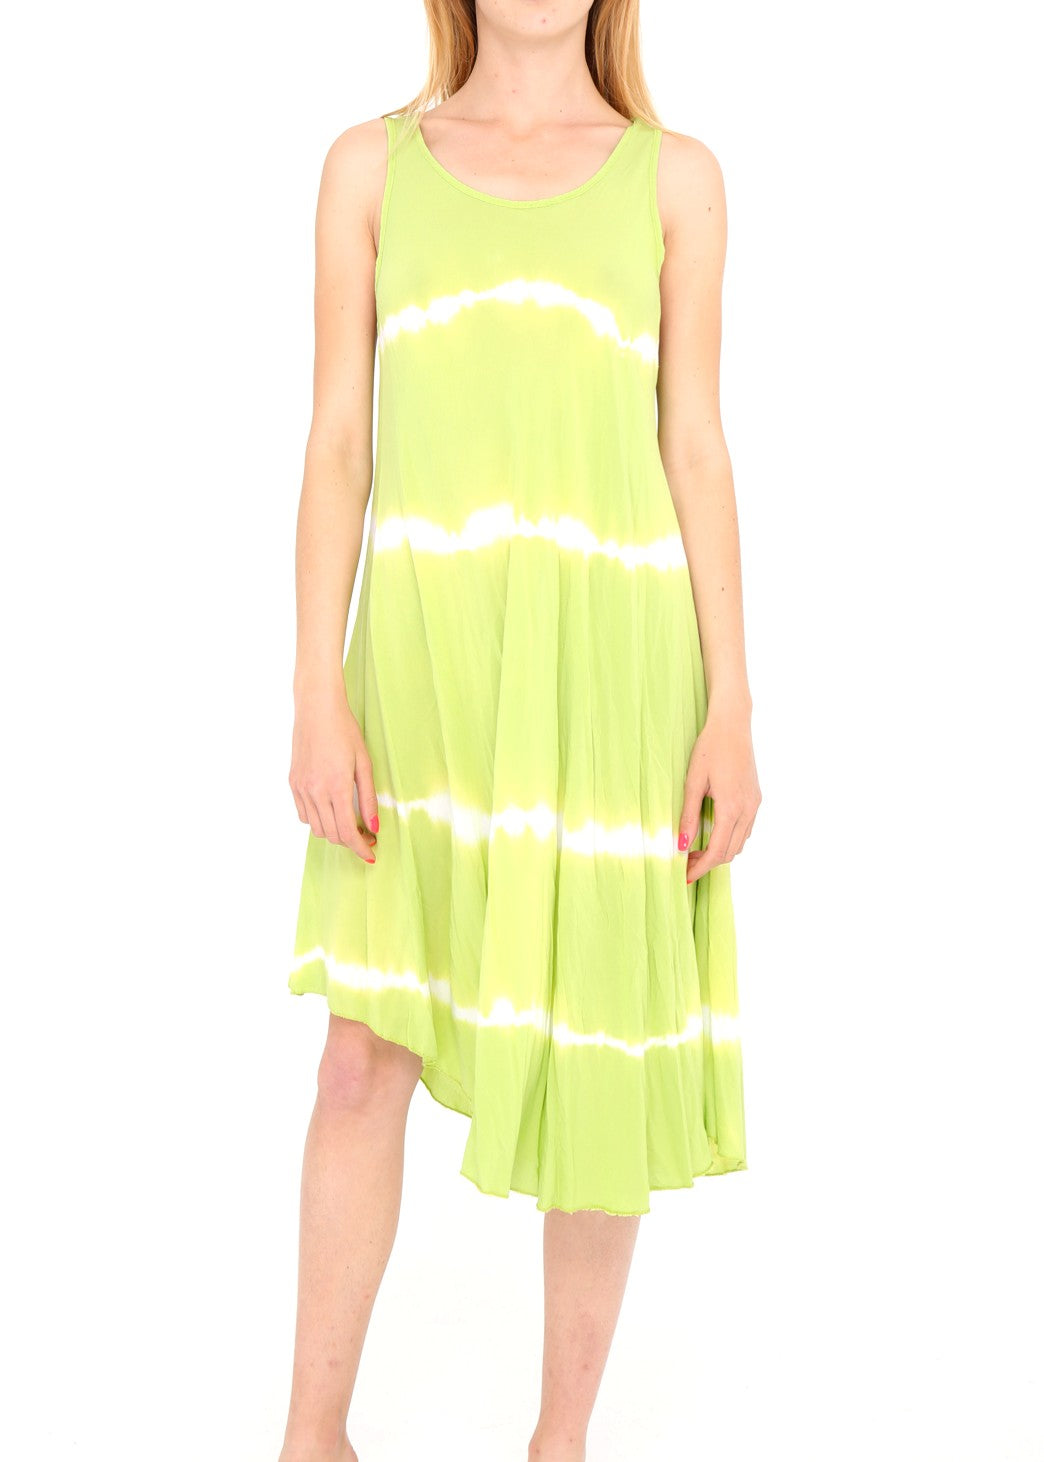 MAJORI - Tie-Dye Tunic Dress